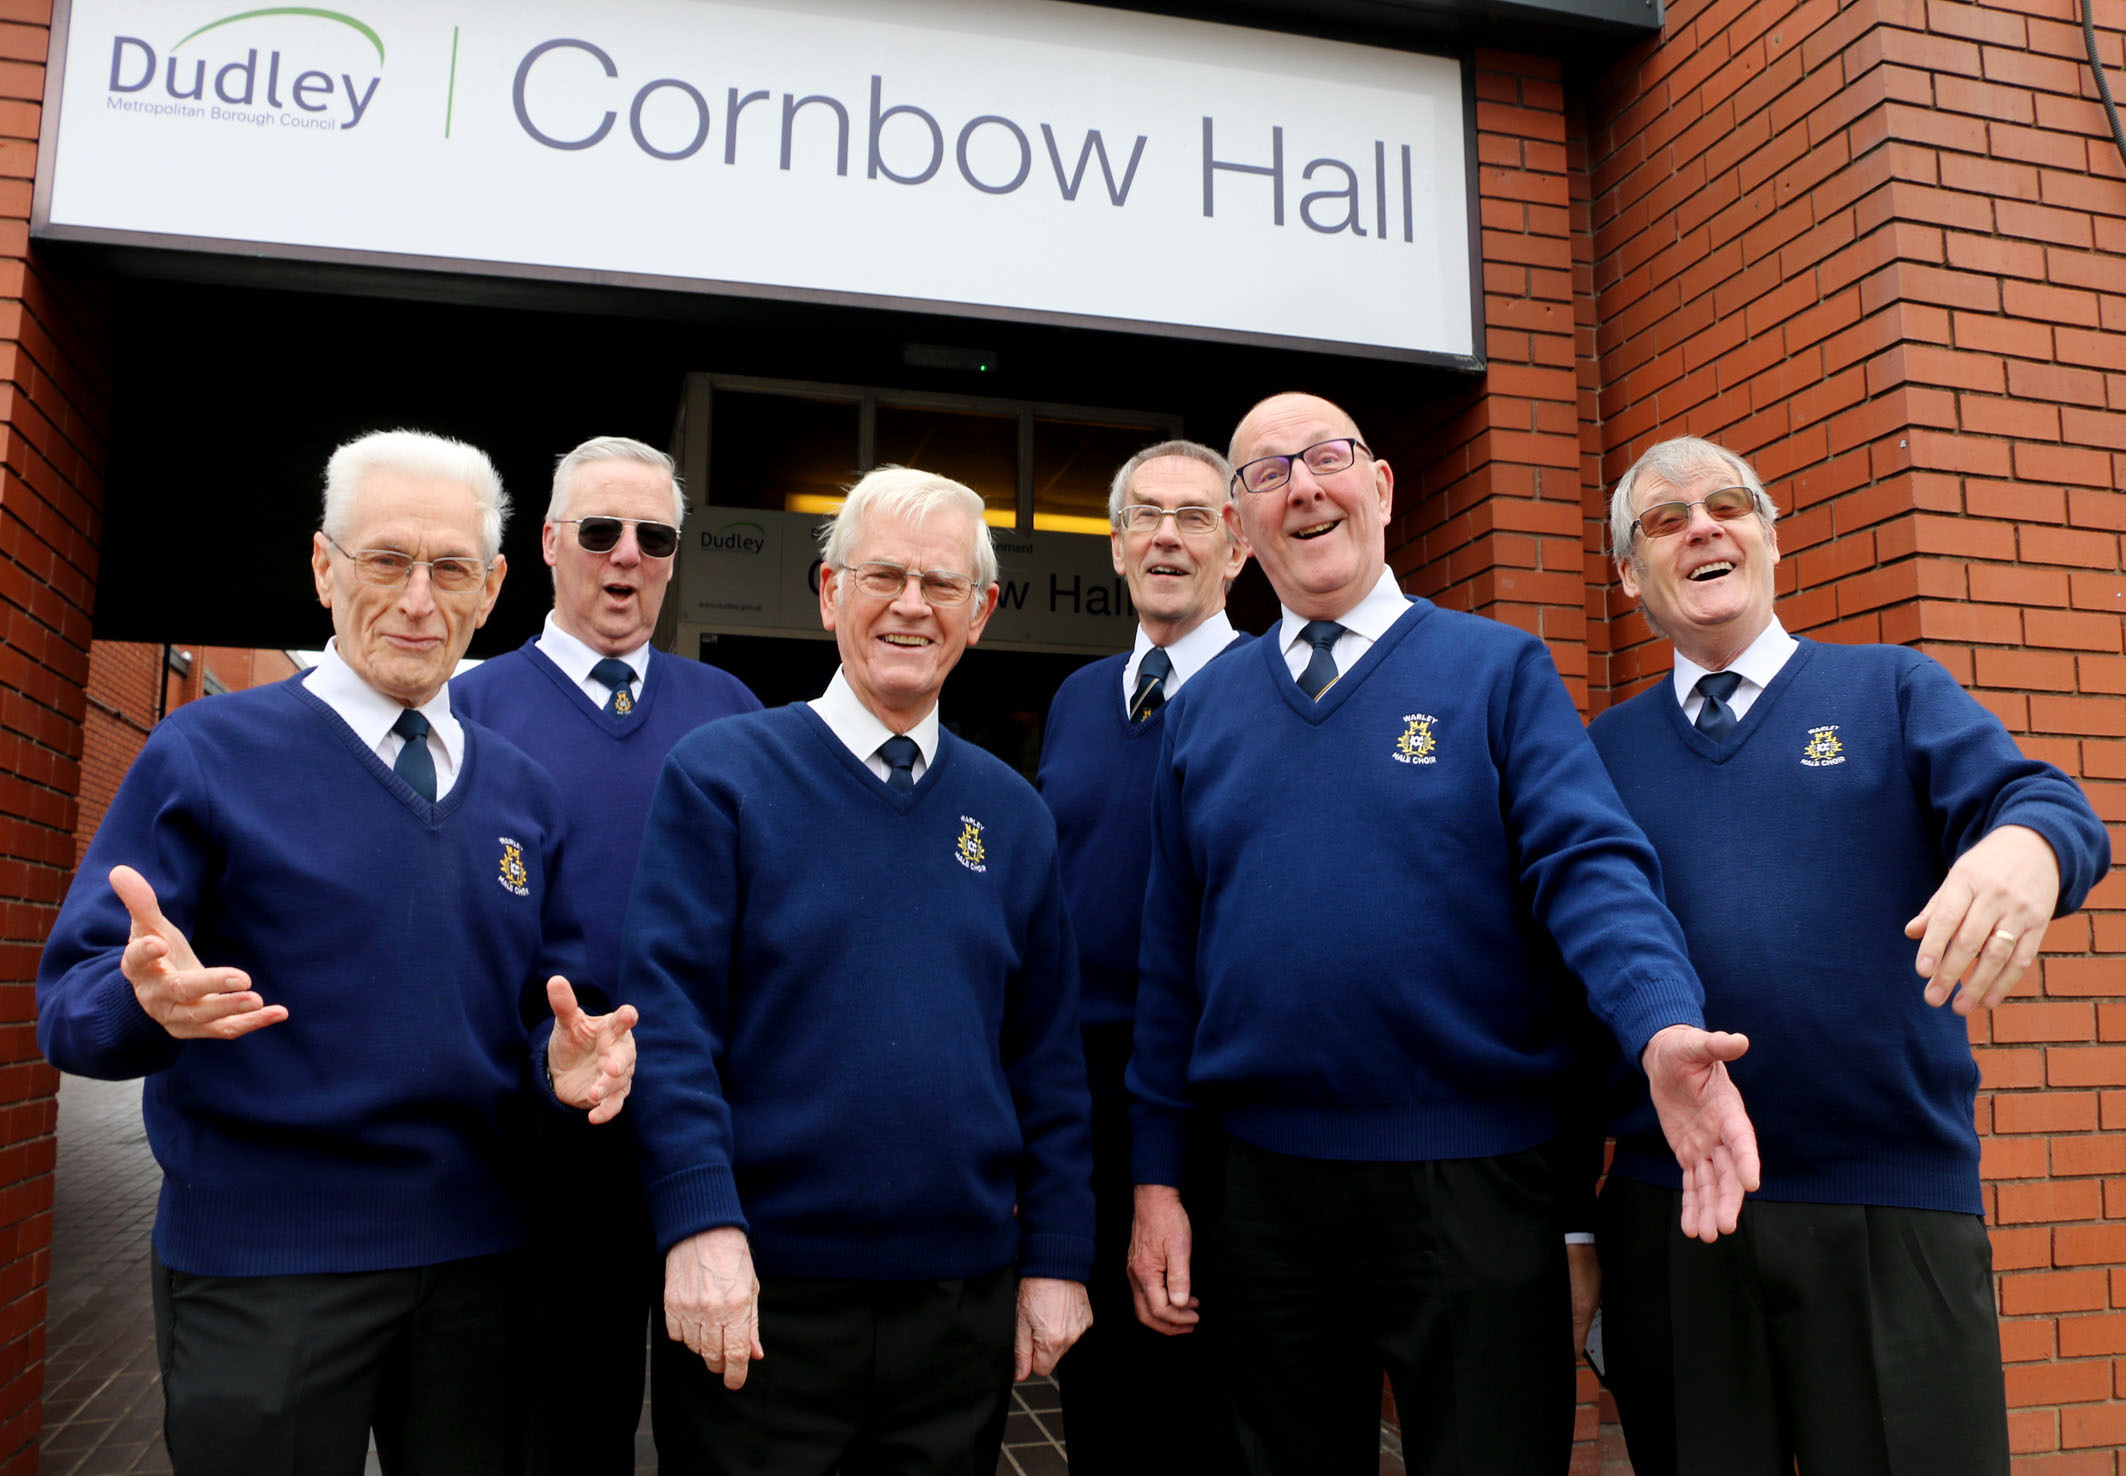 Warley Male Choir's John Larwood, Les Green, Brian Randle, Clive Bradley, Ron Sweetland and Brian Powney prepare for the 75th anniversary gala concert.